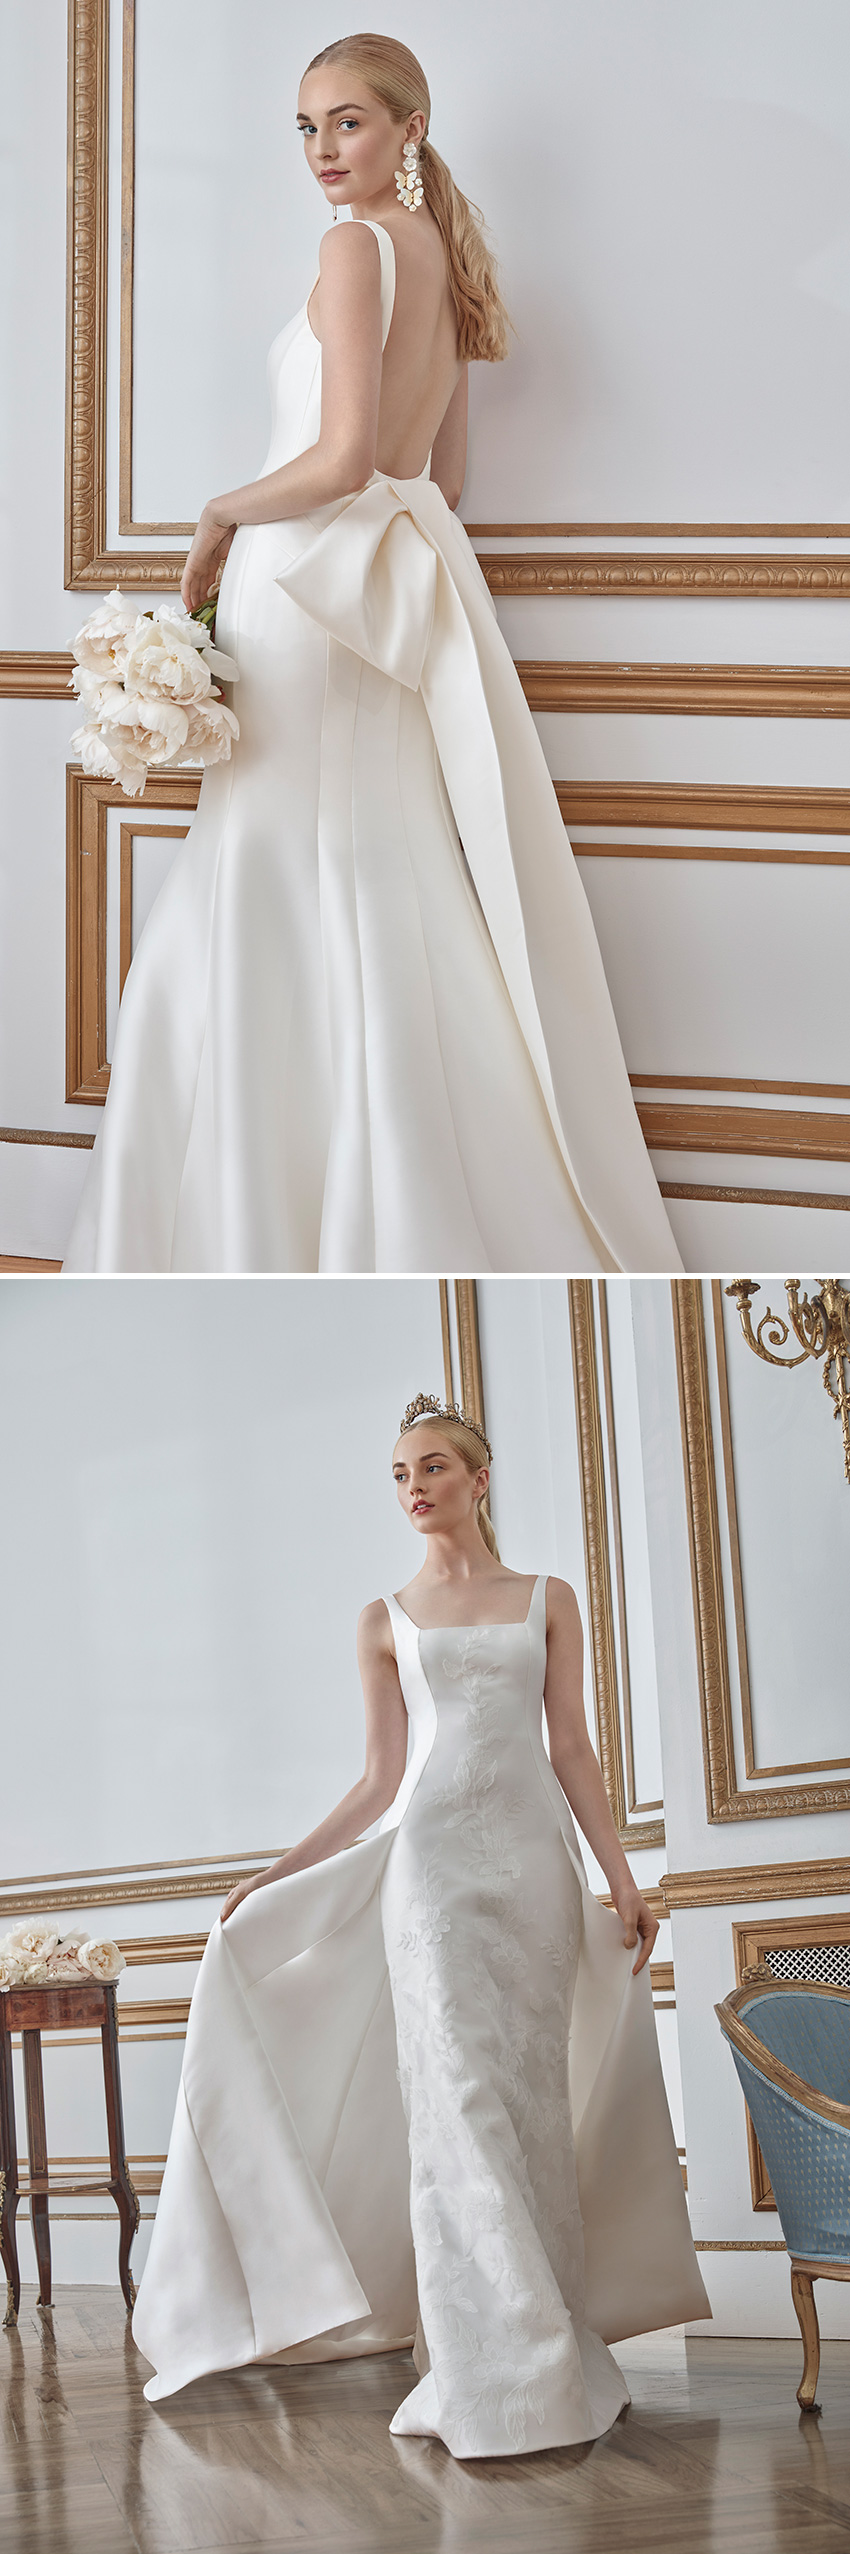 Sareh Nouri Fall 2021 Bridal Collection fir to the princess bride featured in Perfect Wedding Magazine